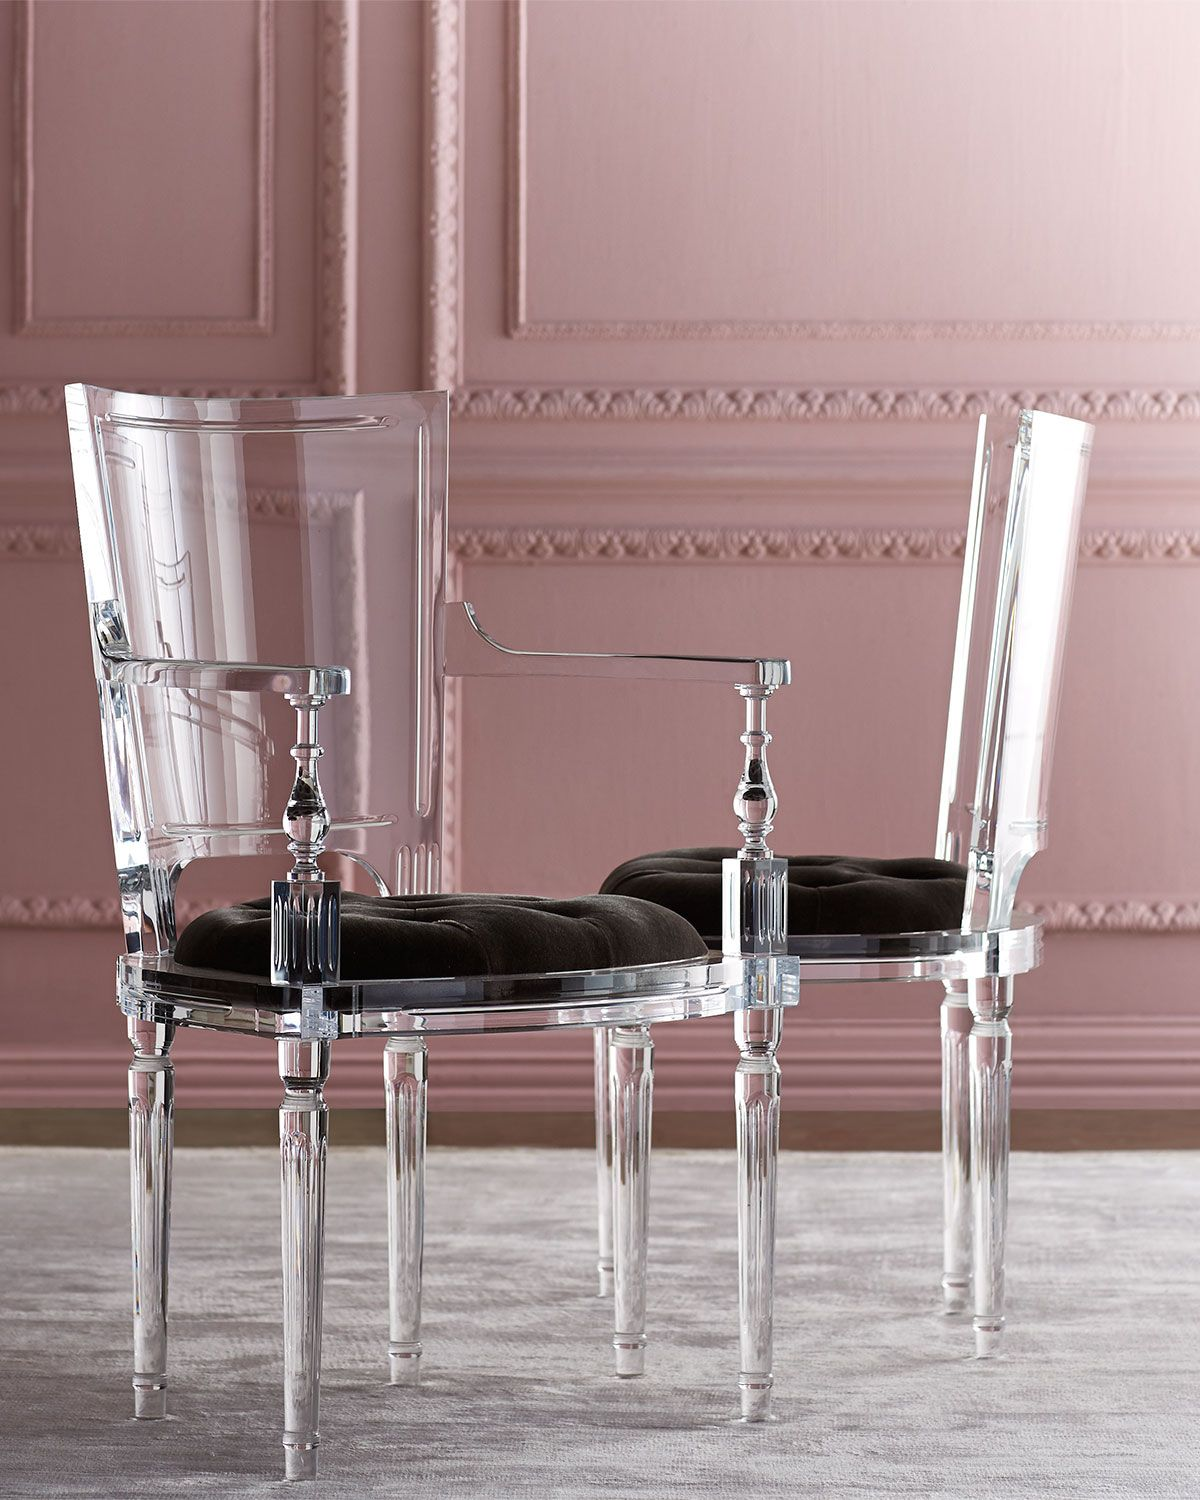 lucite acrylic chairs chair cover rentals richmond va global views katherine home stuff i love